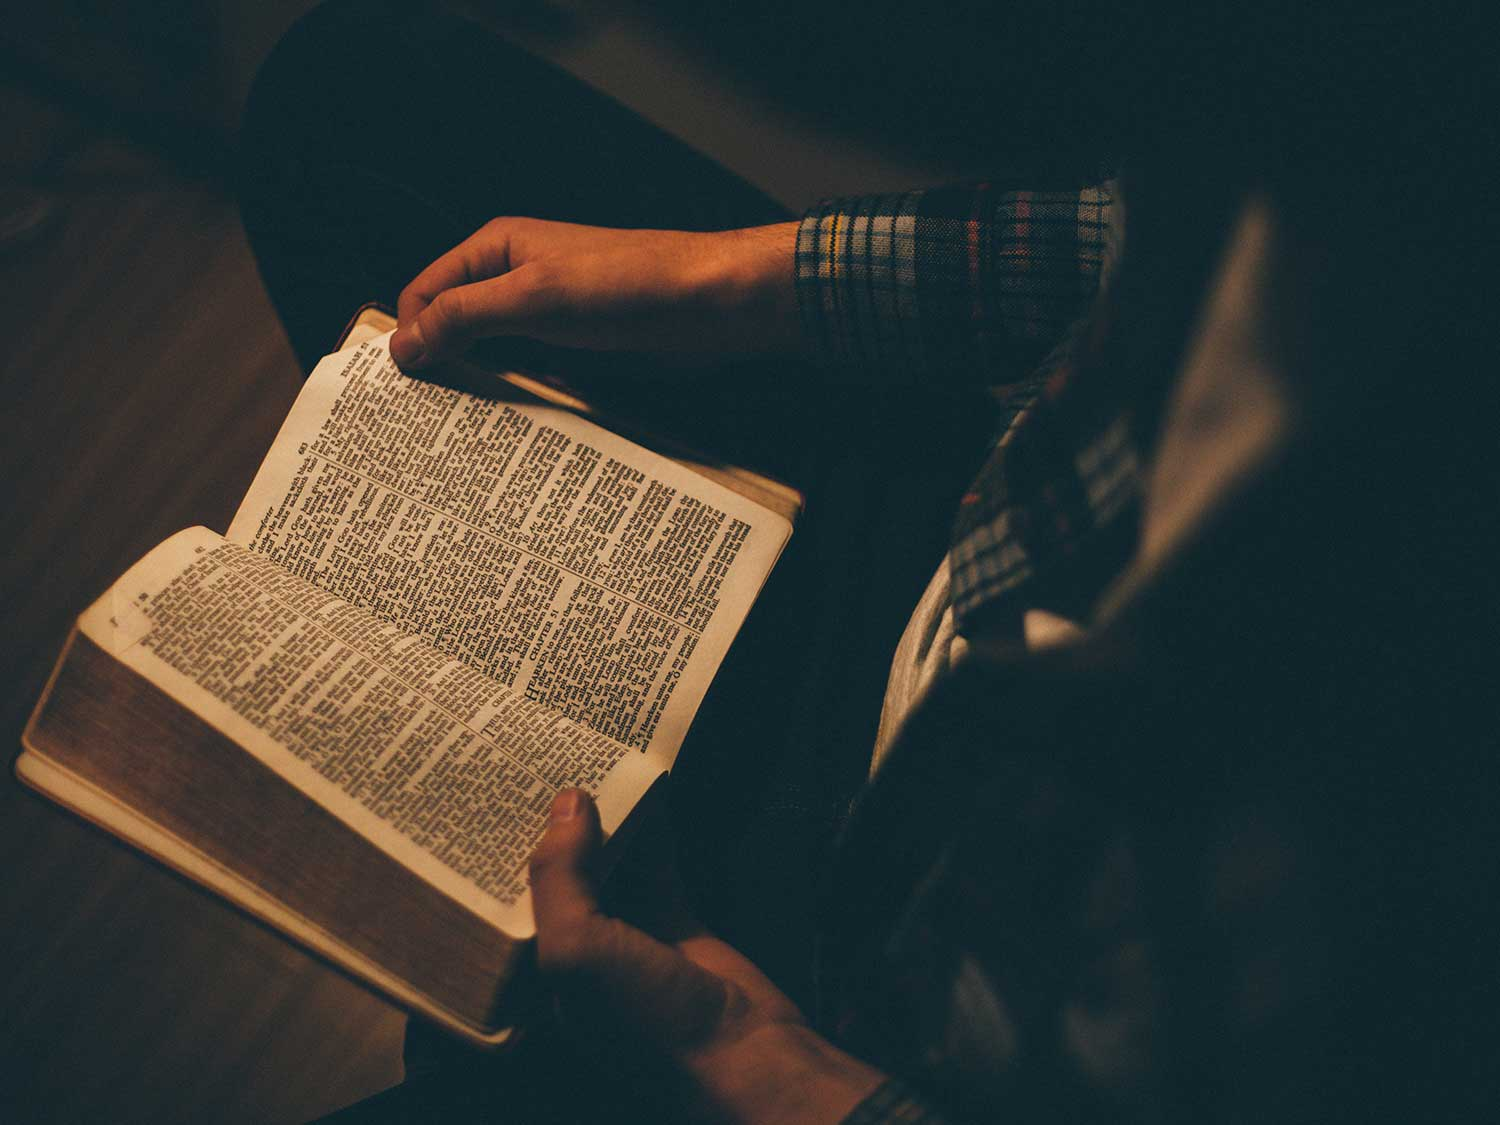 Reading Bible with light.